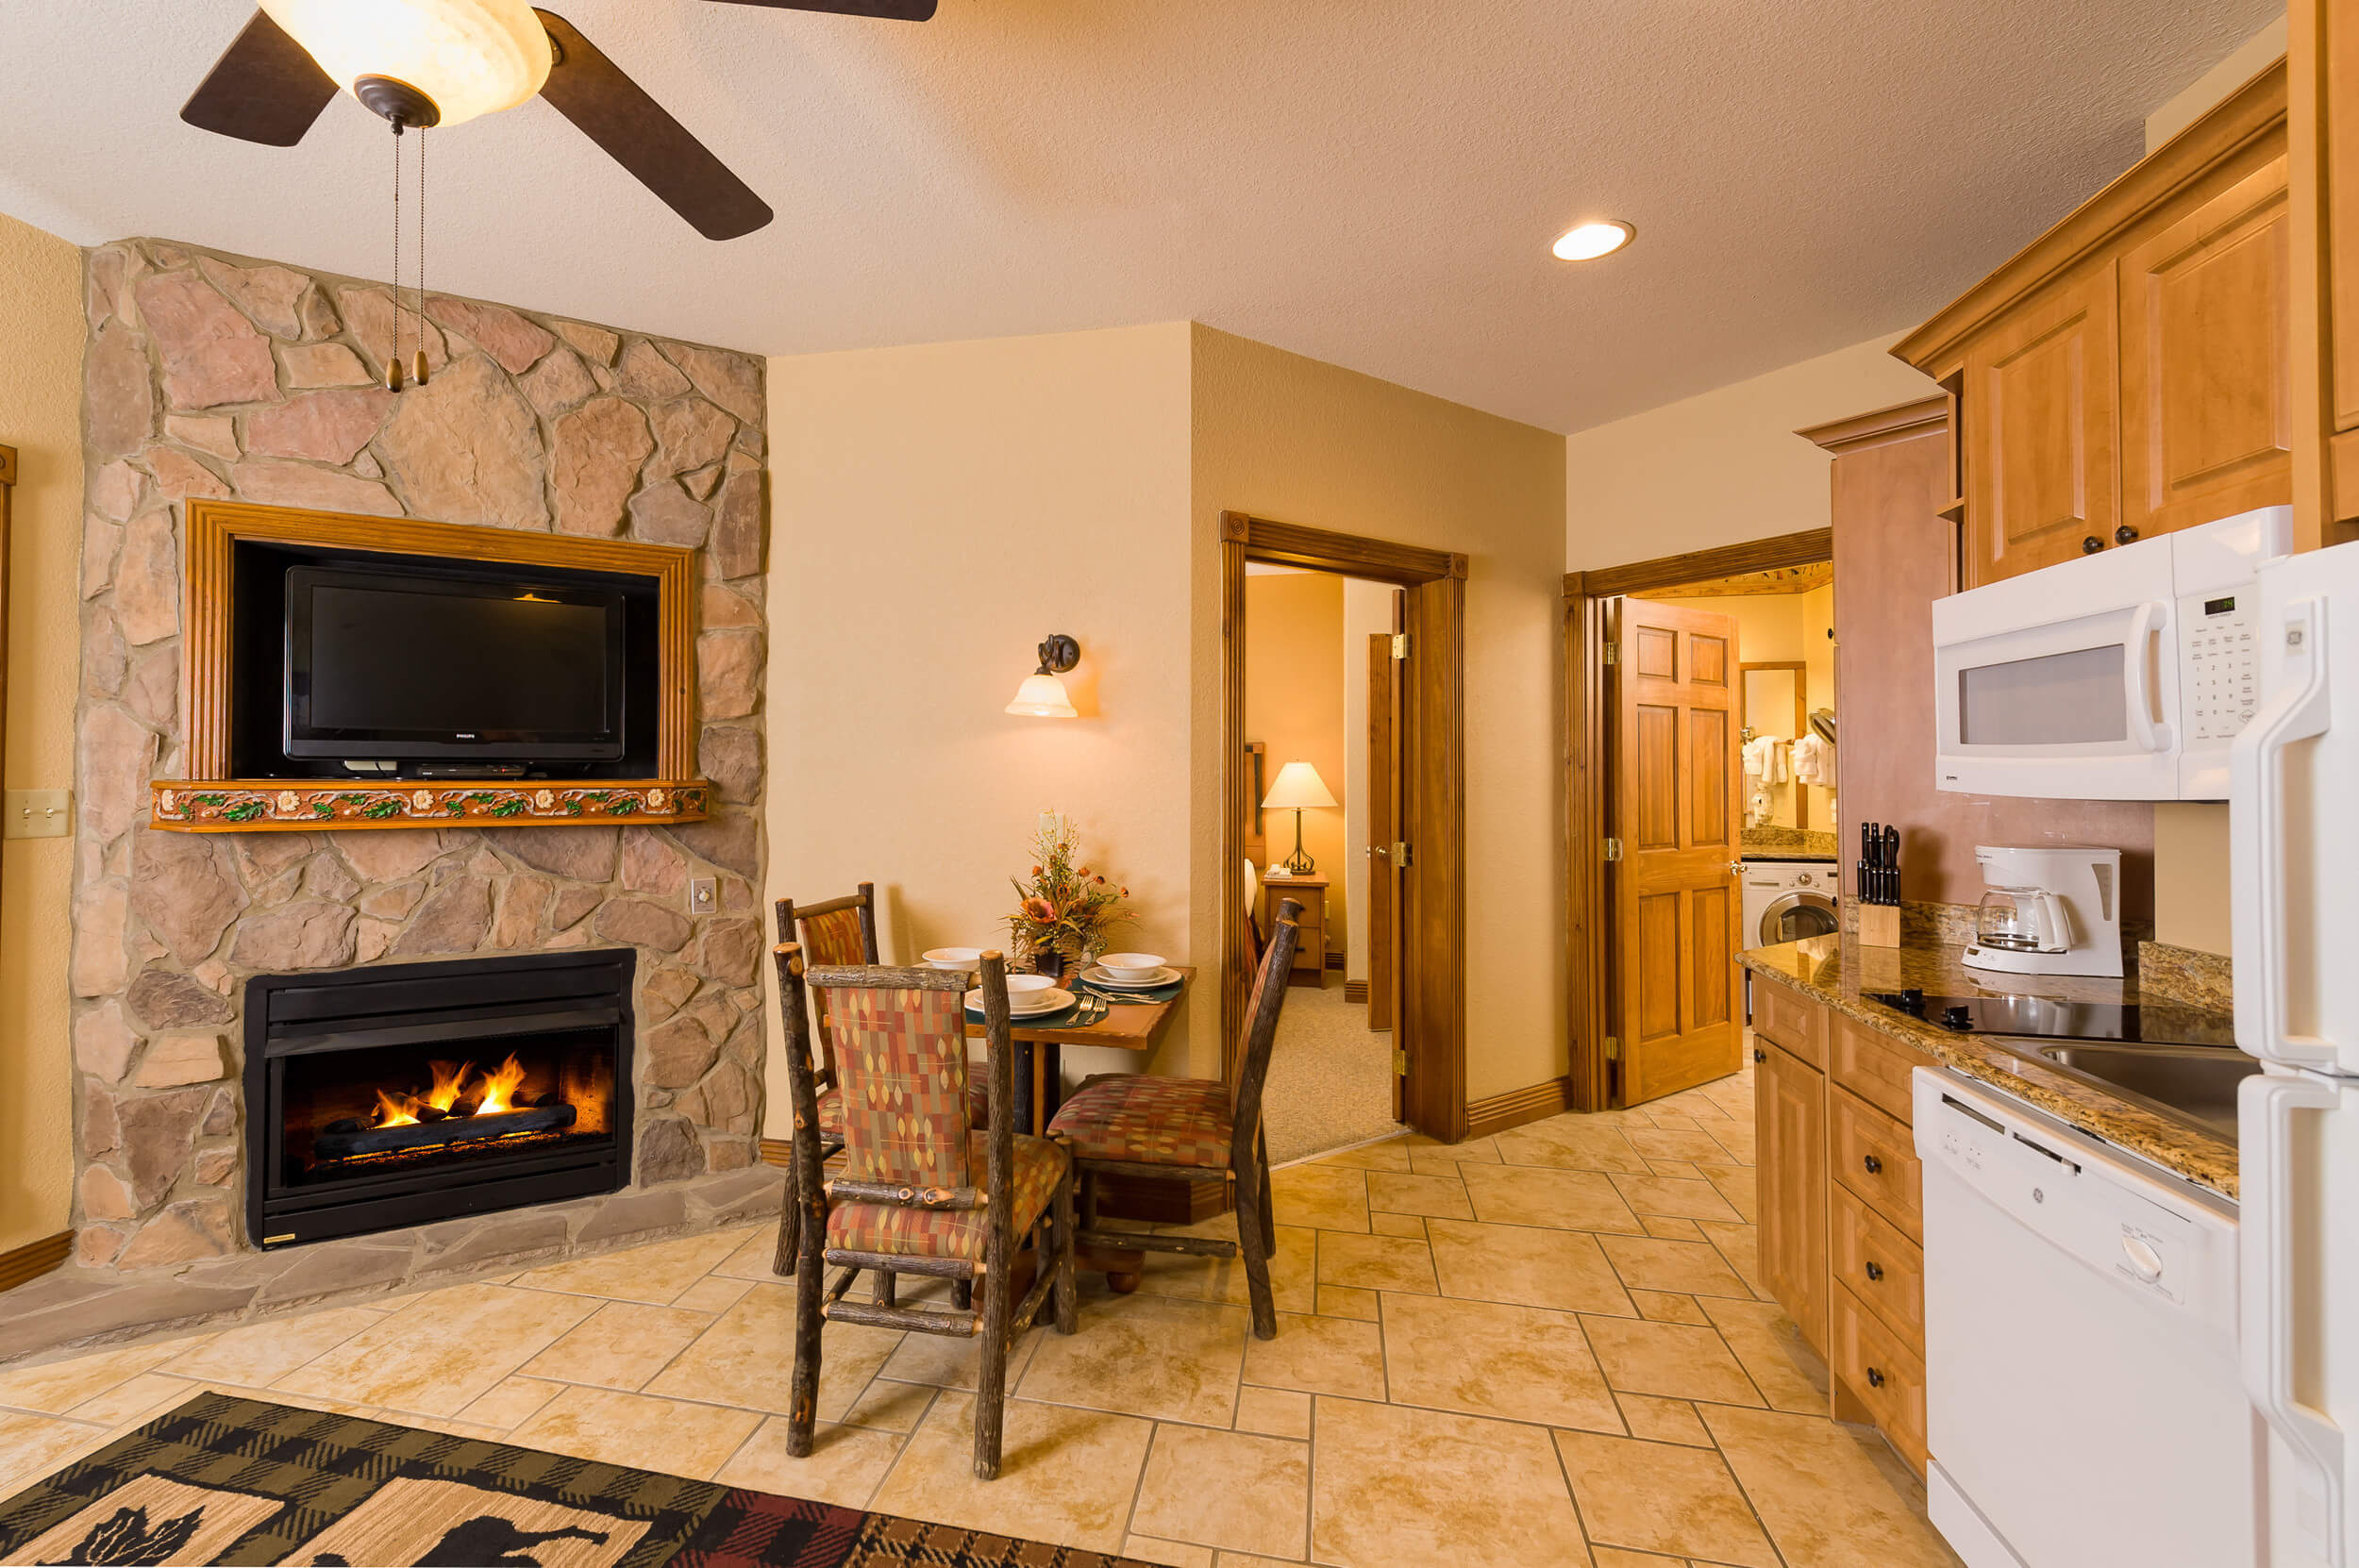 Westgate smoky mountain resort tennessee vacation rentals for About you salon gatlinburg tn